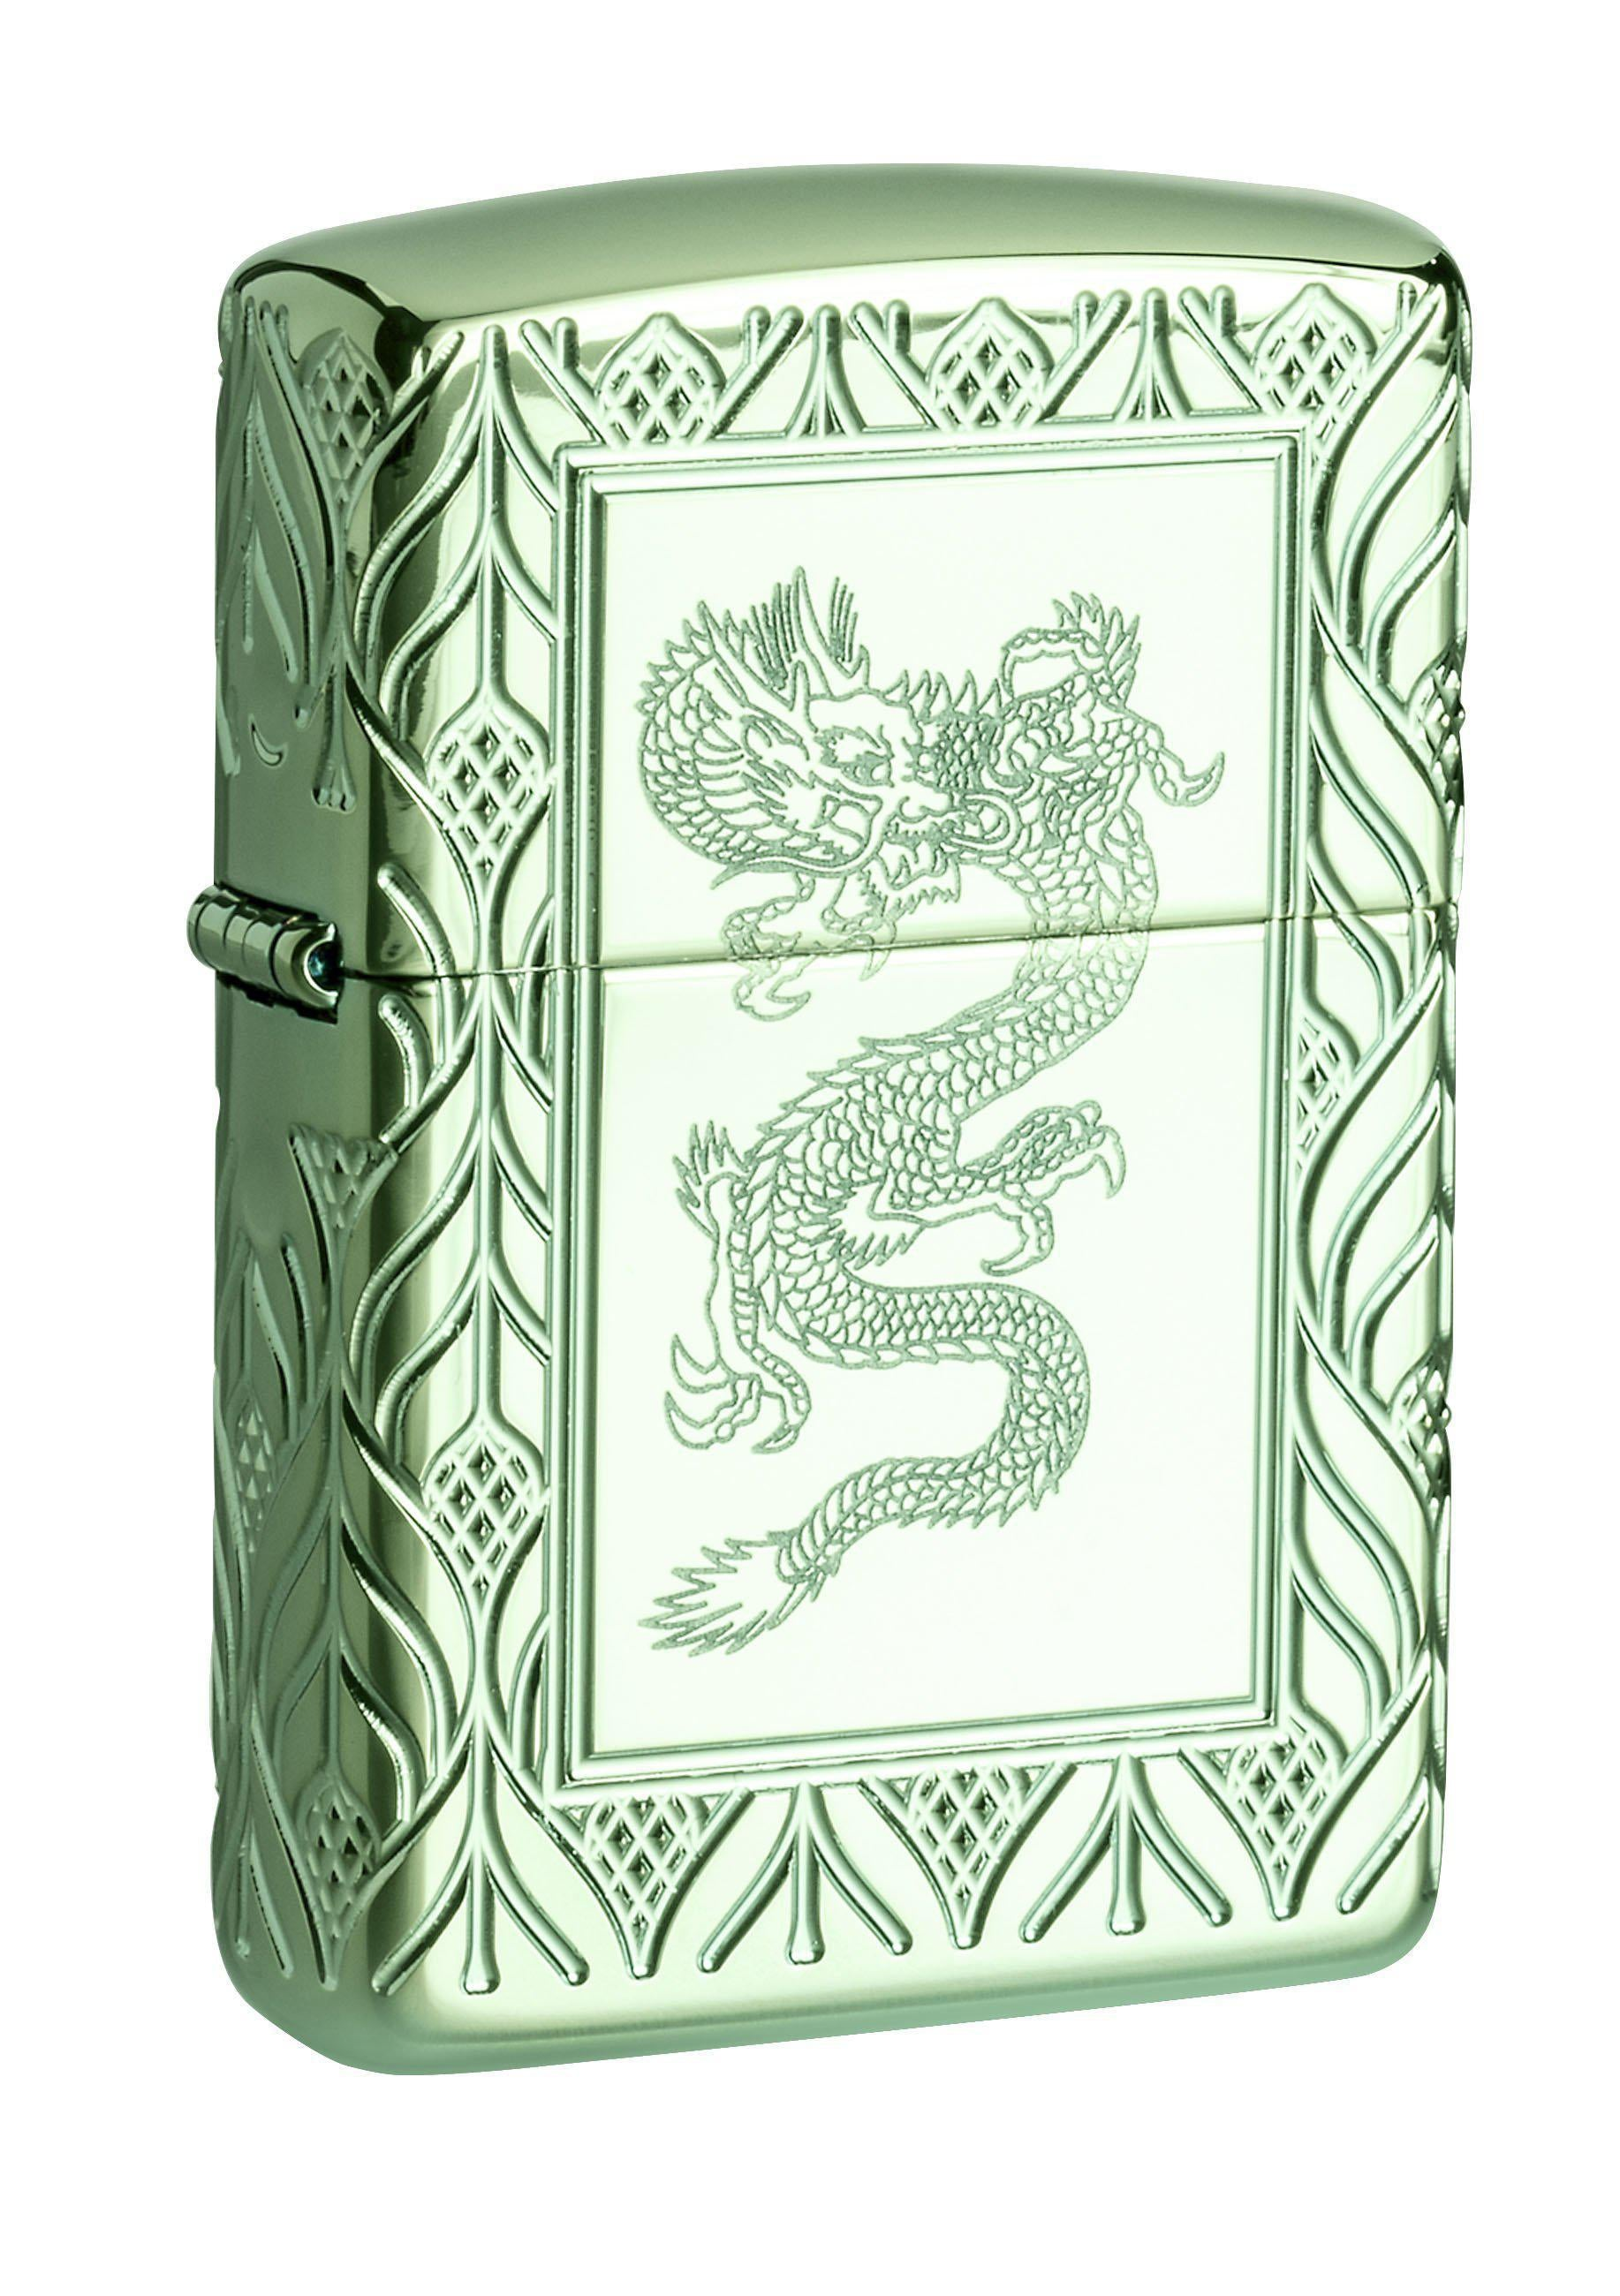 Zippo Lighter: Armor MultiCut Elegant Dragon - High Polish Green 49054 (3957989671027)